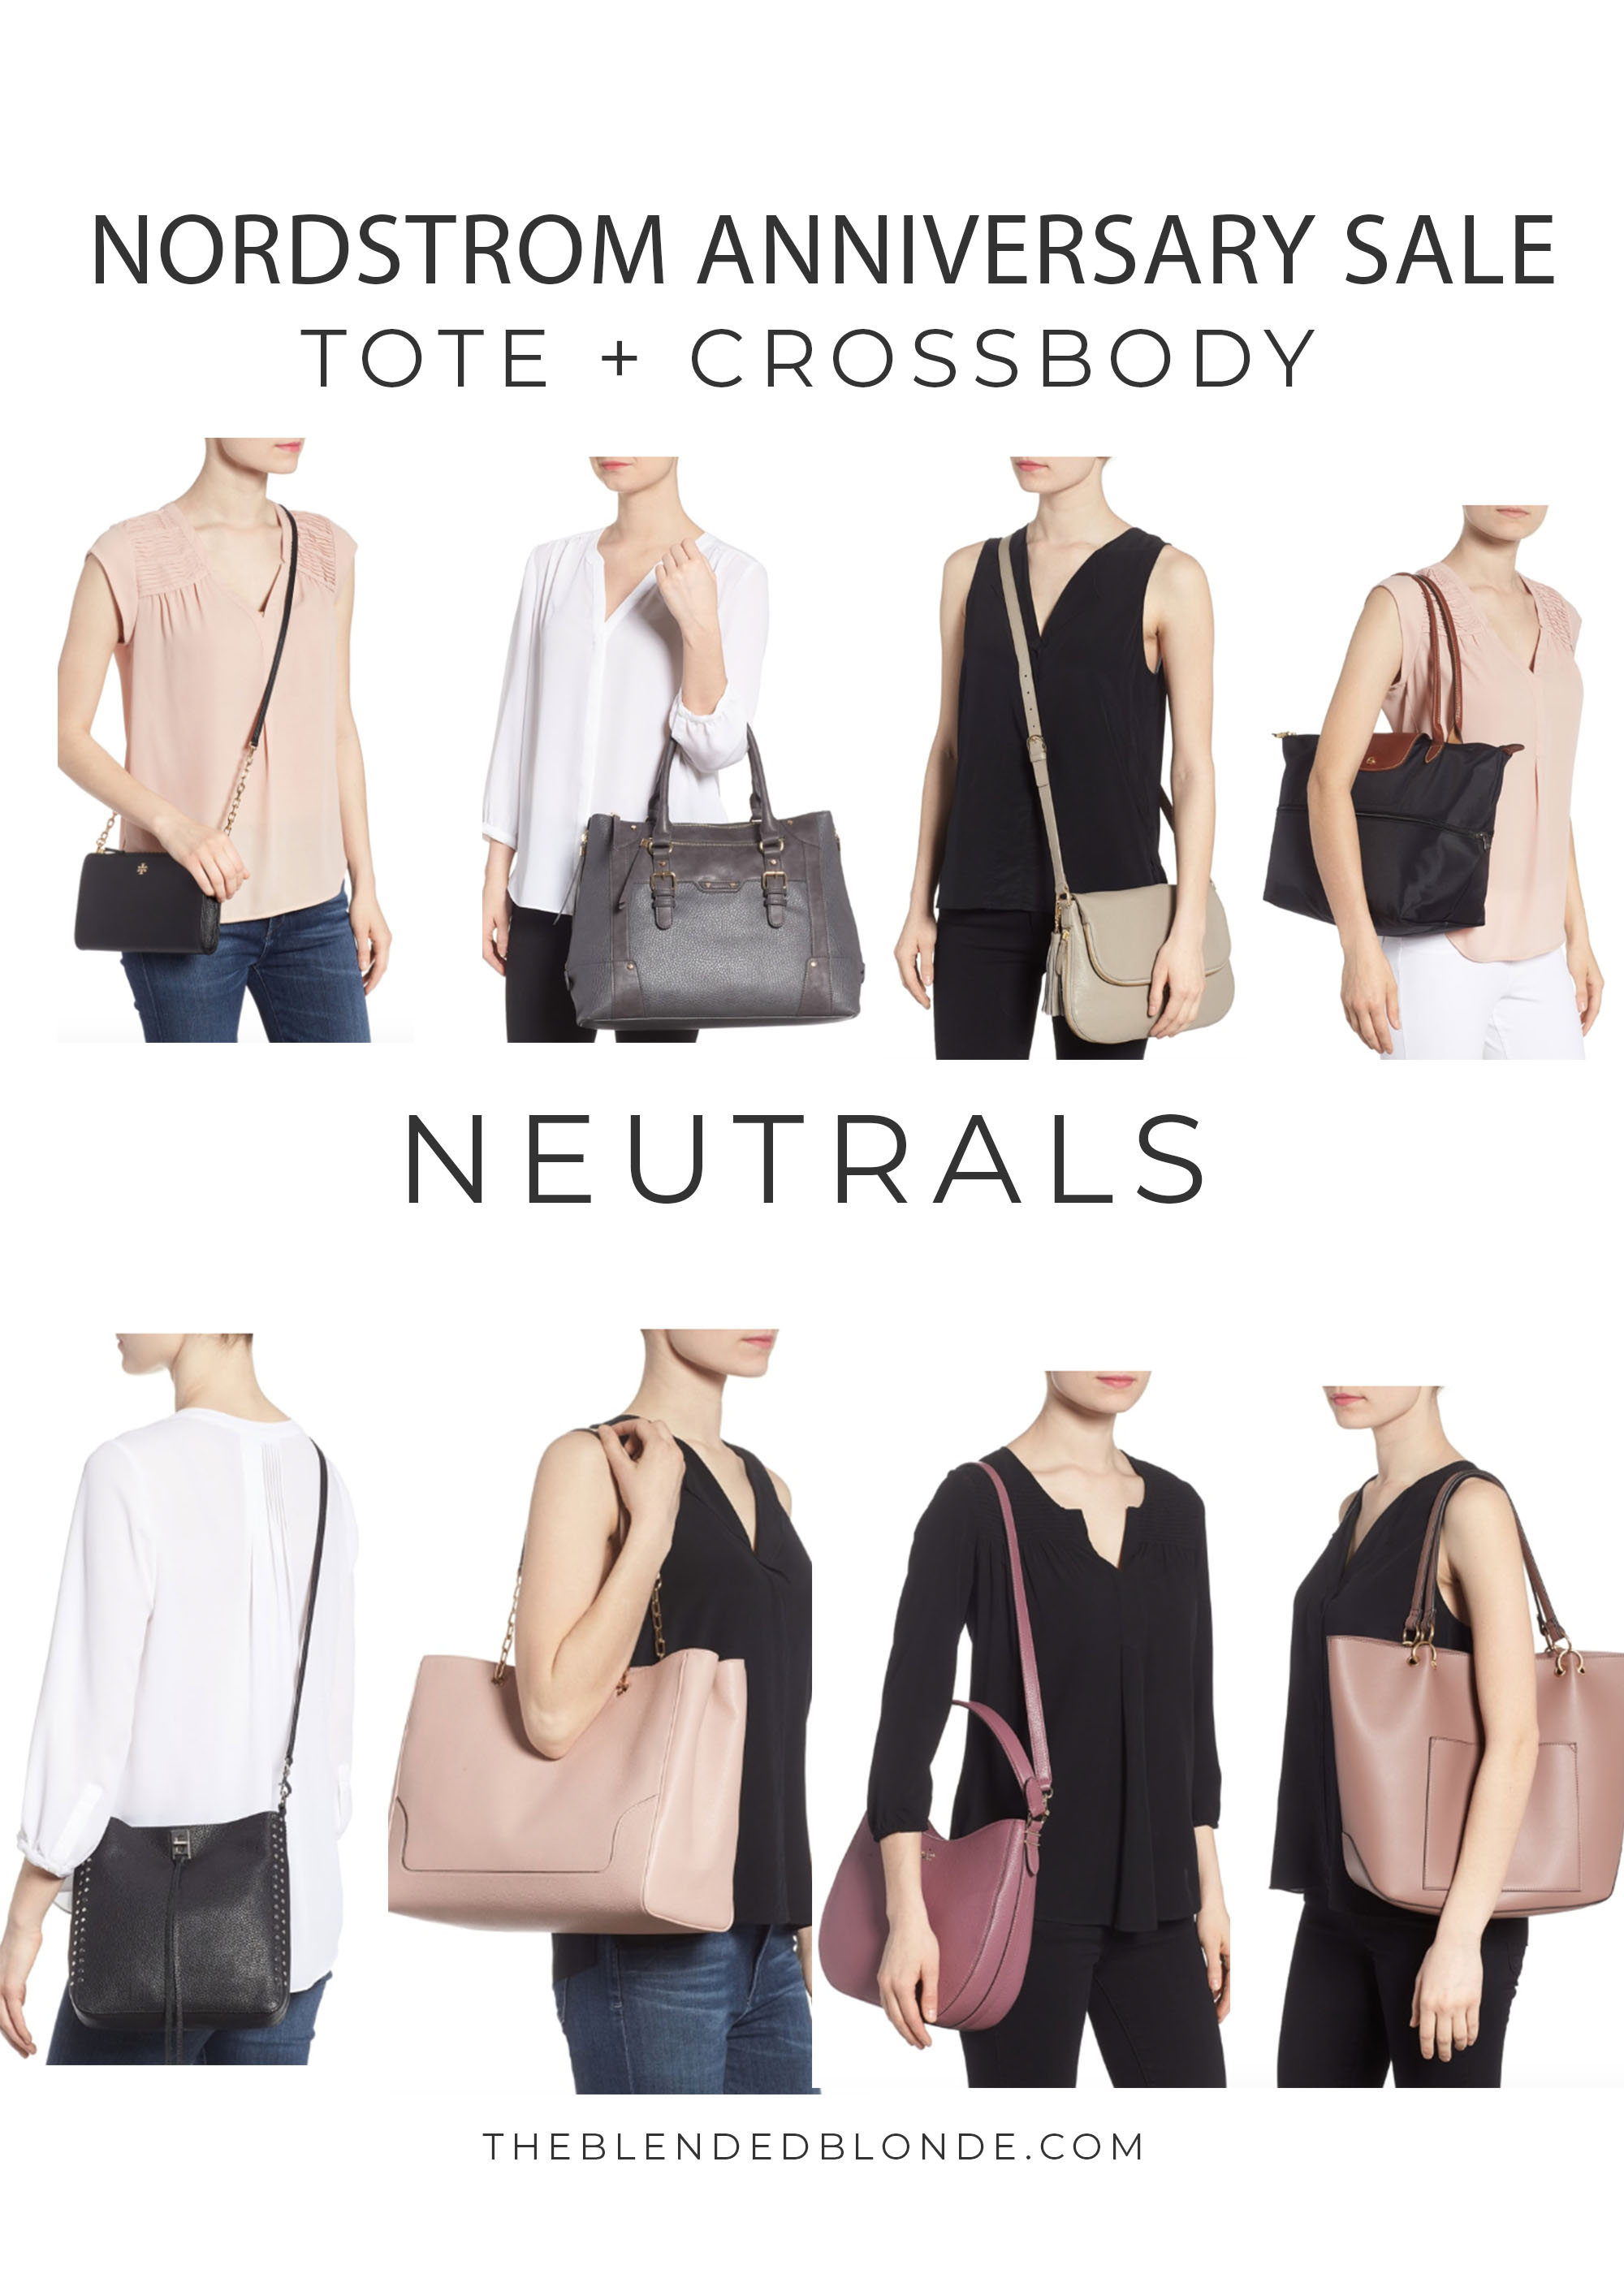 TOP HANDBAG PICKS FROM THE NORDSTROM ANNIVERSARY SALE 2018